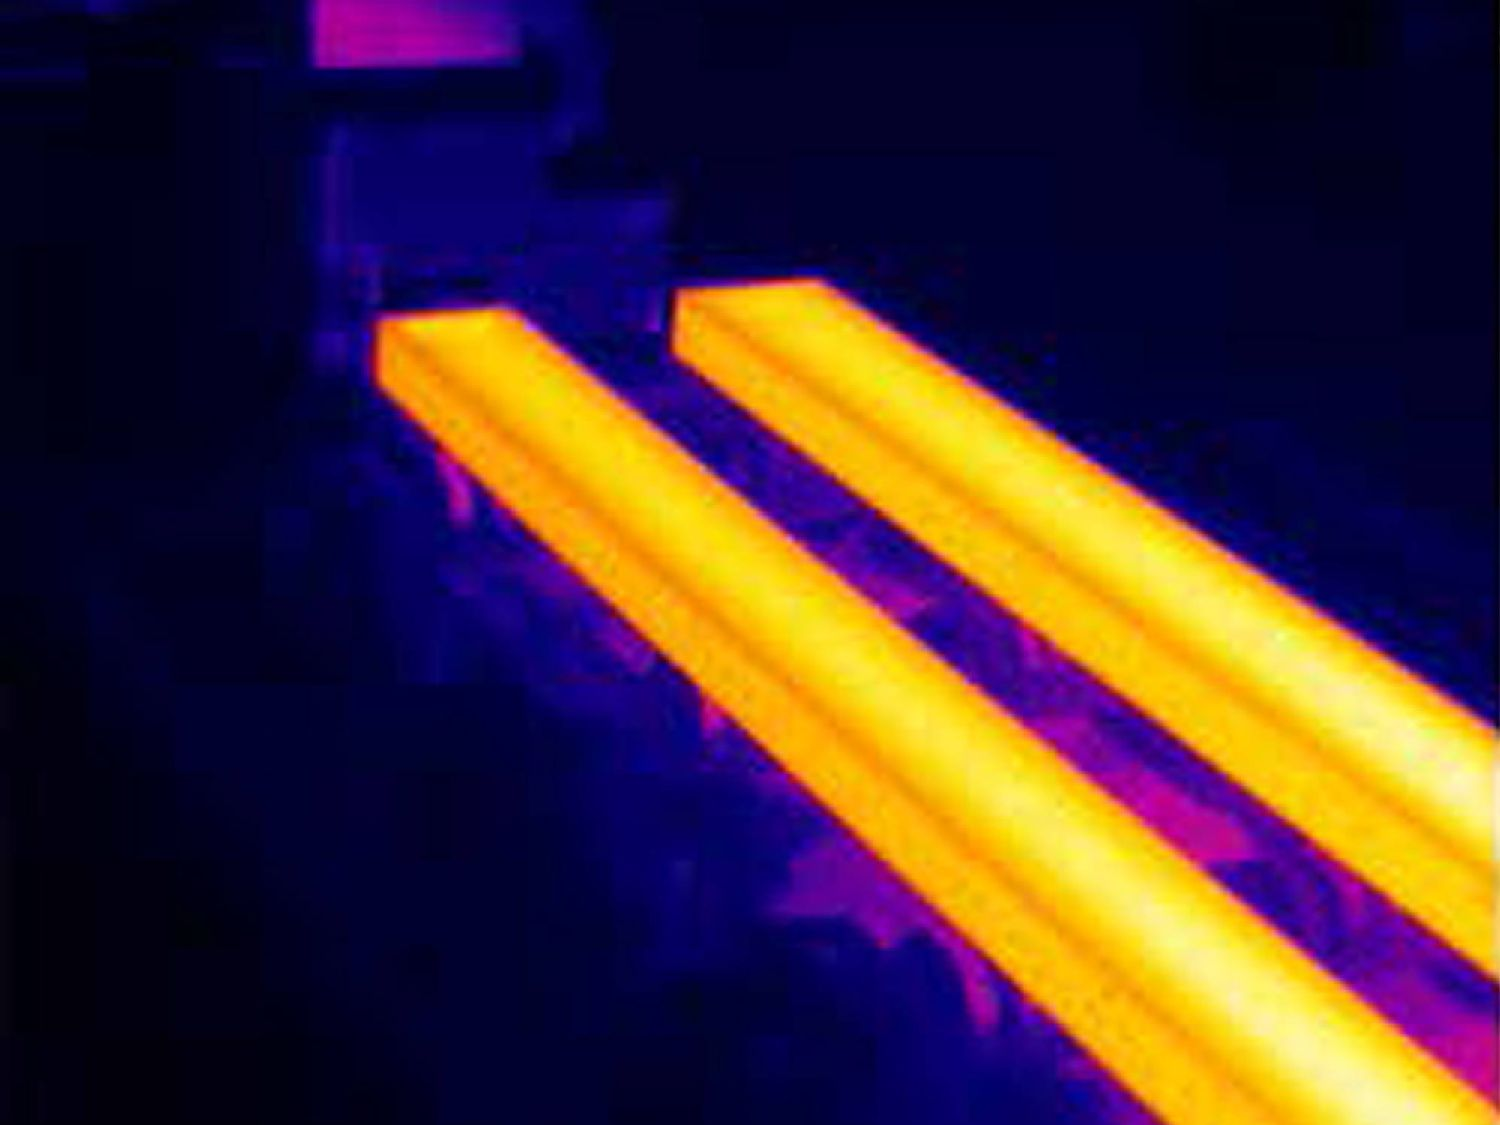 thermography-quality-safety-v2-2000x1500.jpg